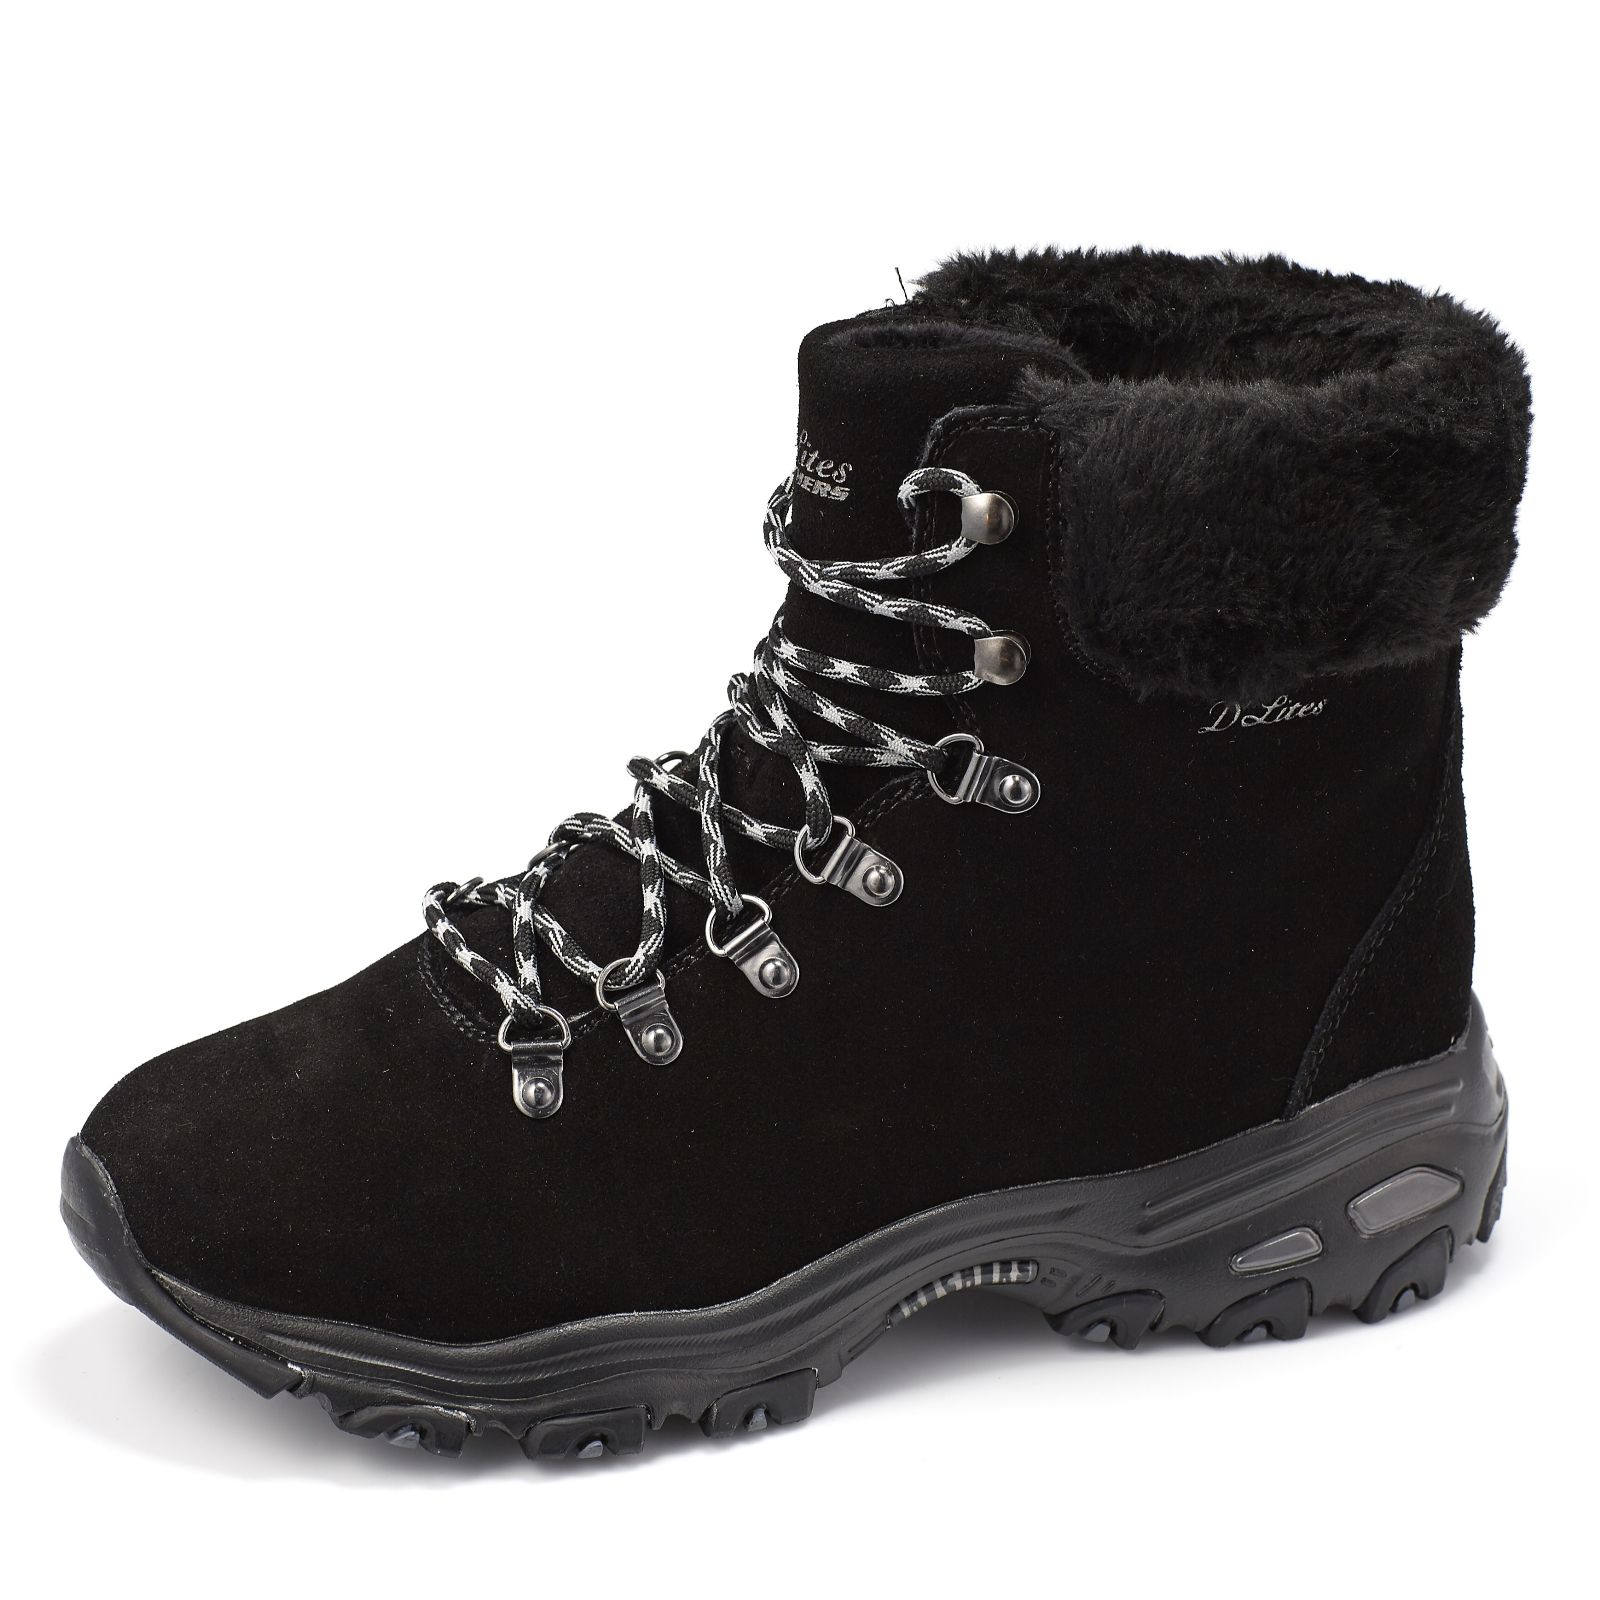 search for official compare price top-rated latest Skechers D'Lites Alps Mid Height Lace Up Hiking Boot - QVC UK